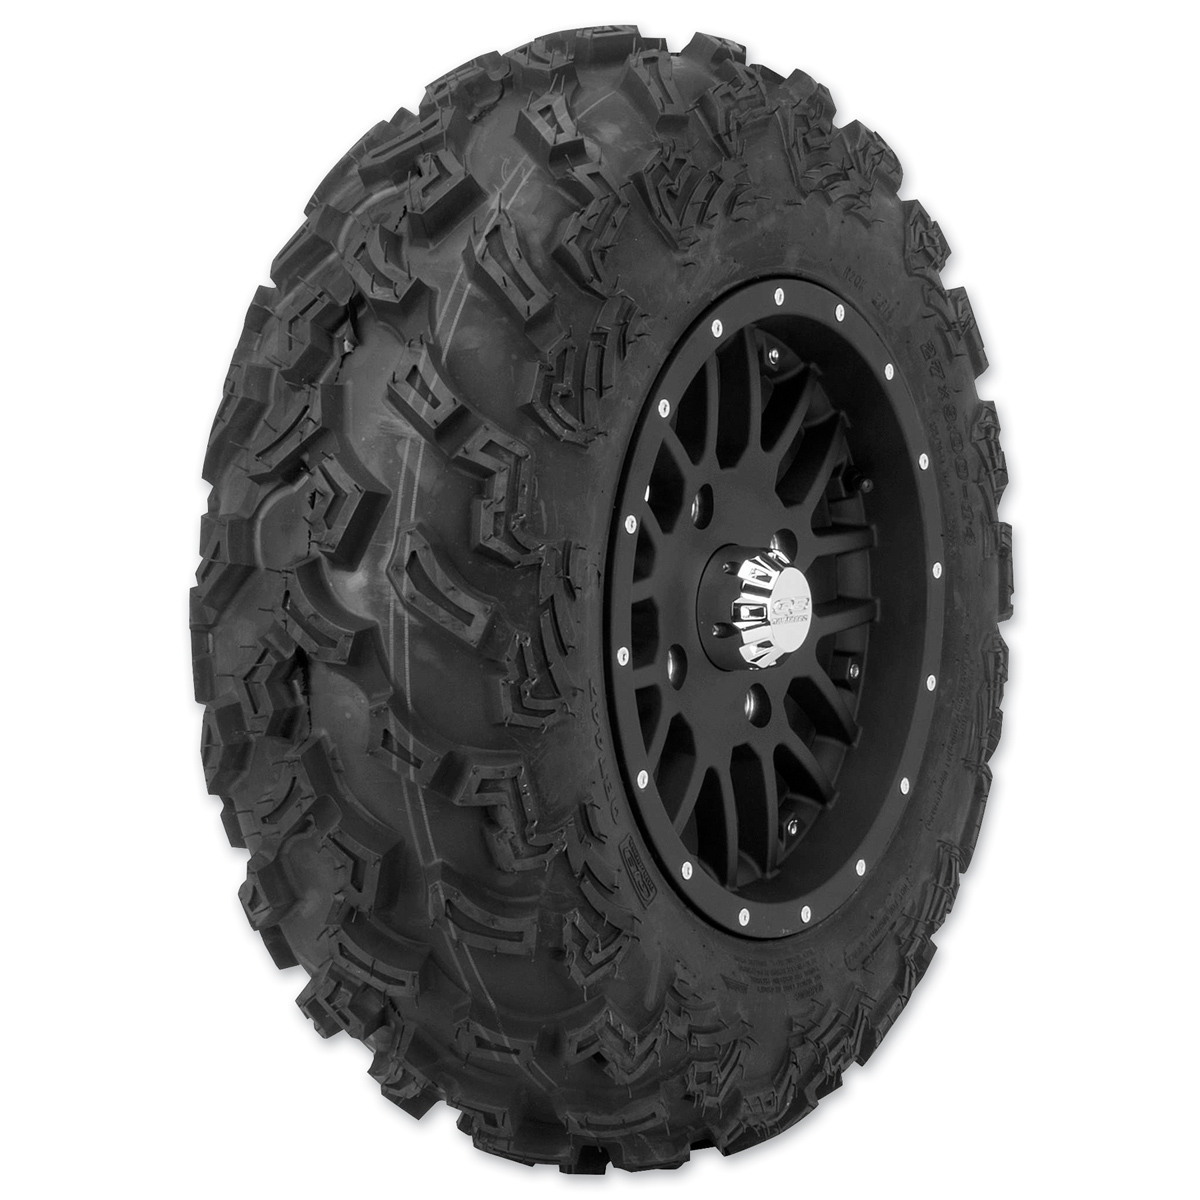 Quadboss QBT447 27X9-14 6-Ply Front Tire